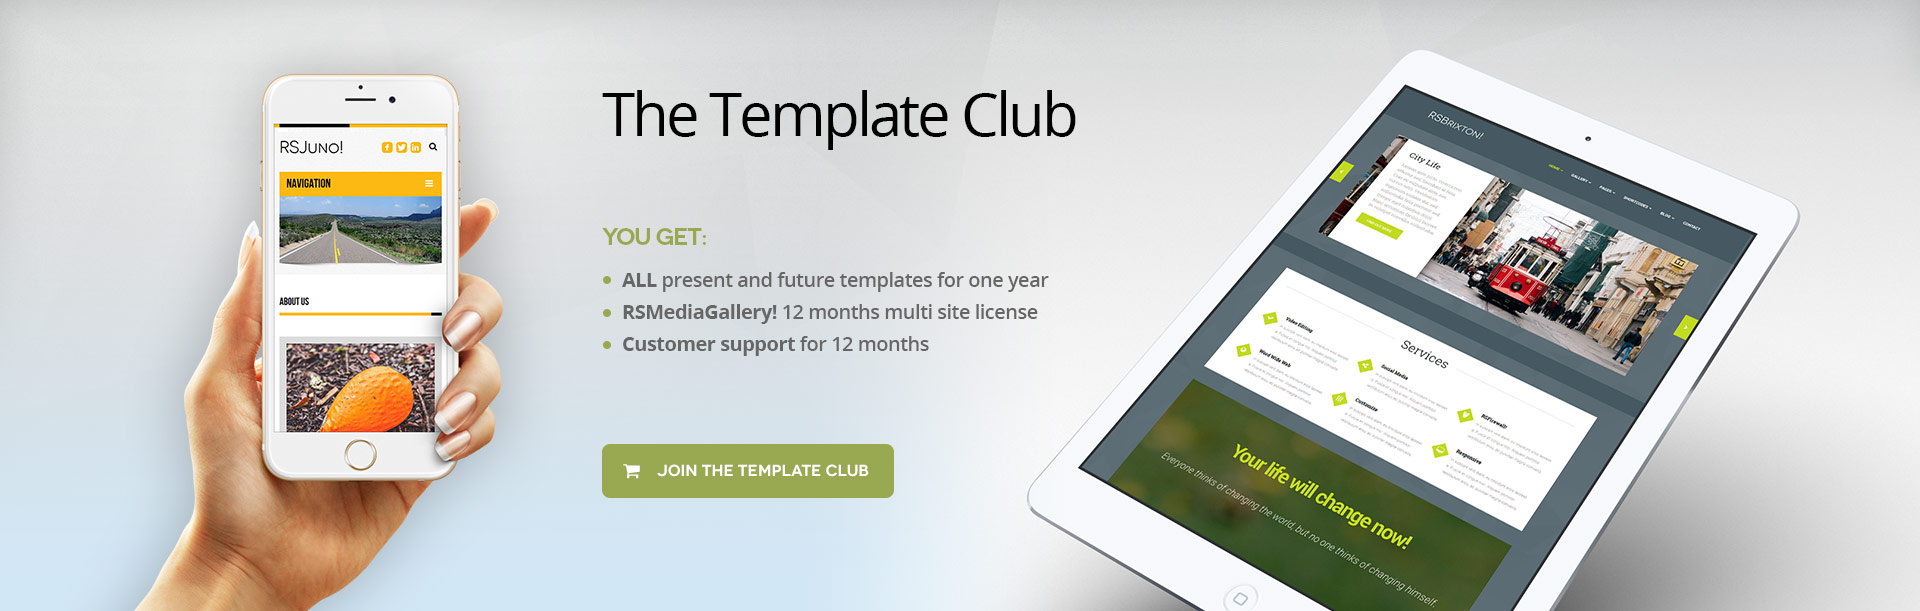 Join our template club